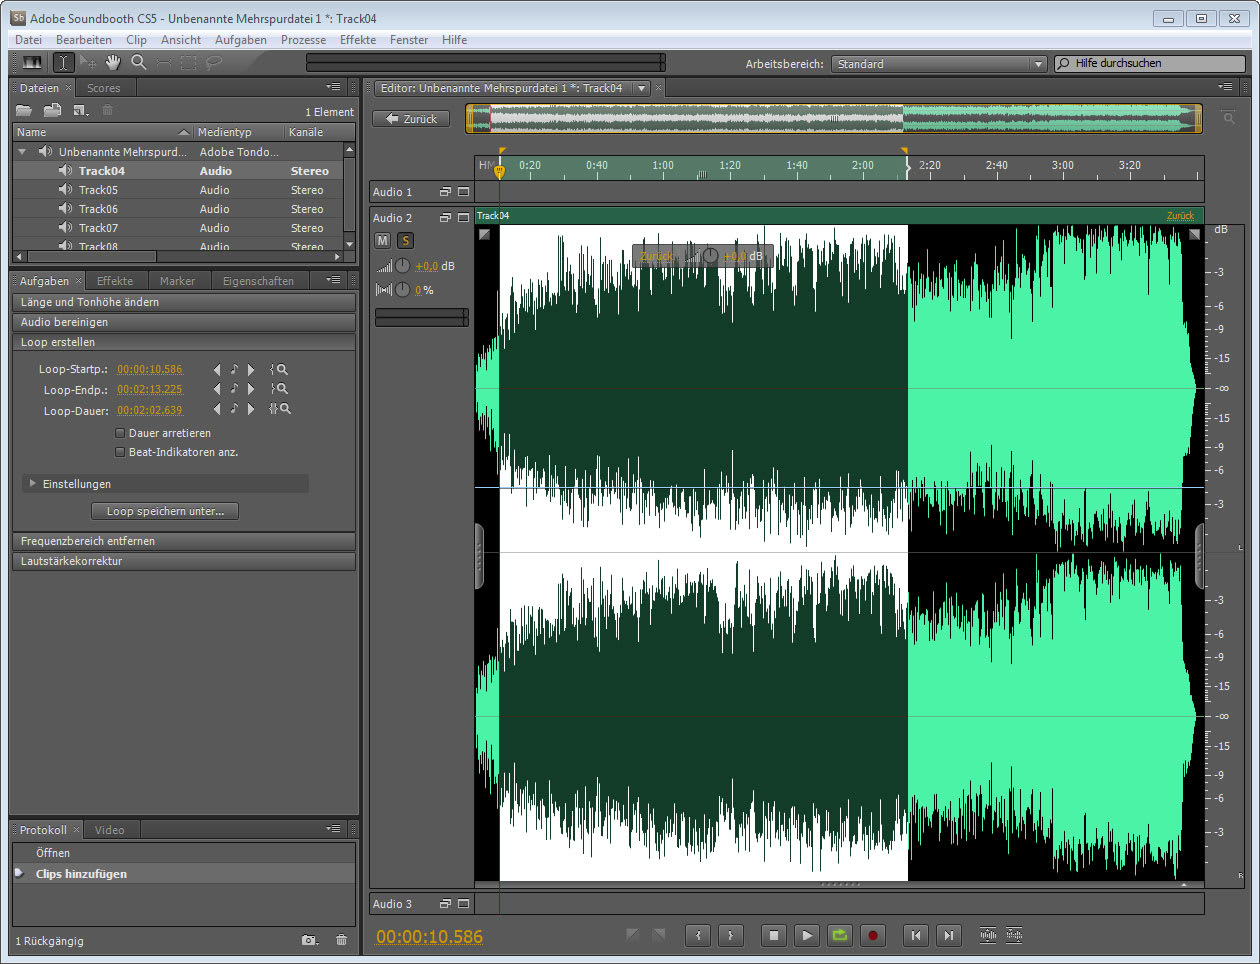 Adobe Soundbooth Cs5 Mac Download